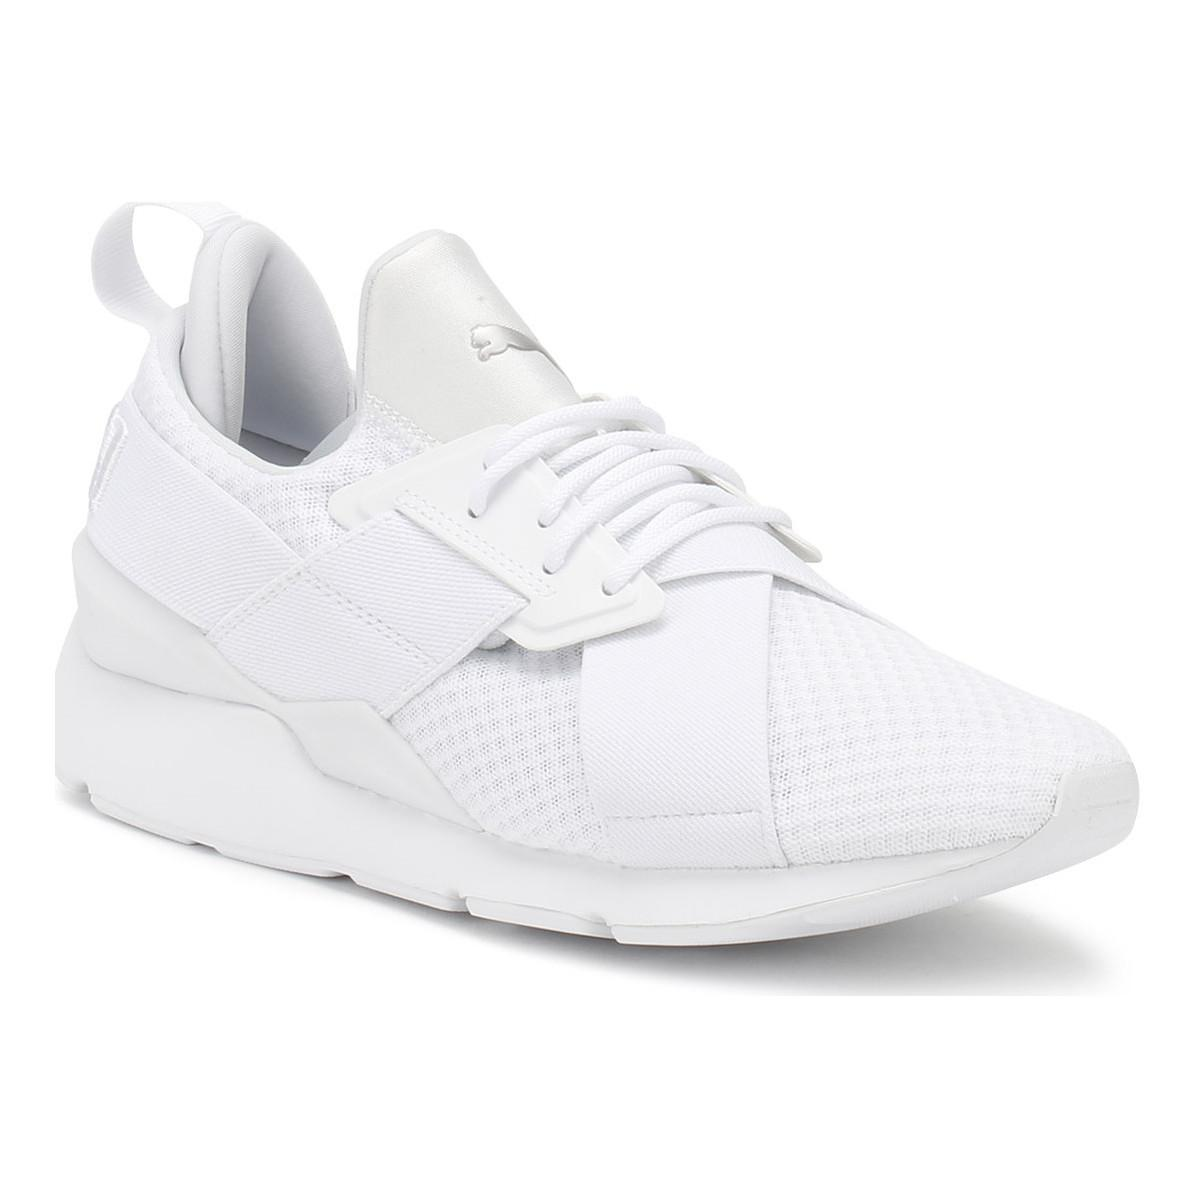 0eb4f4eae48 Puma Womens White Muse X-strap Ep Trainers Women s Shoes (trainers ...